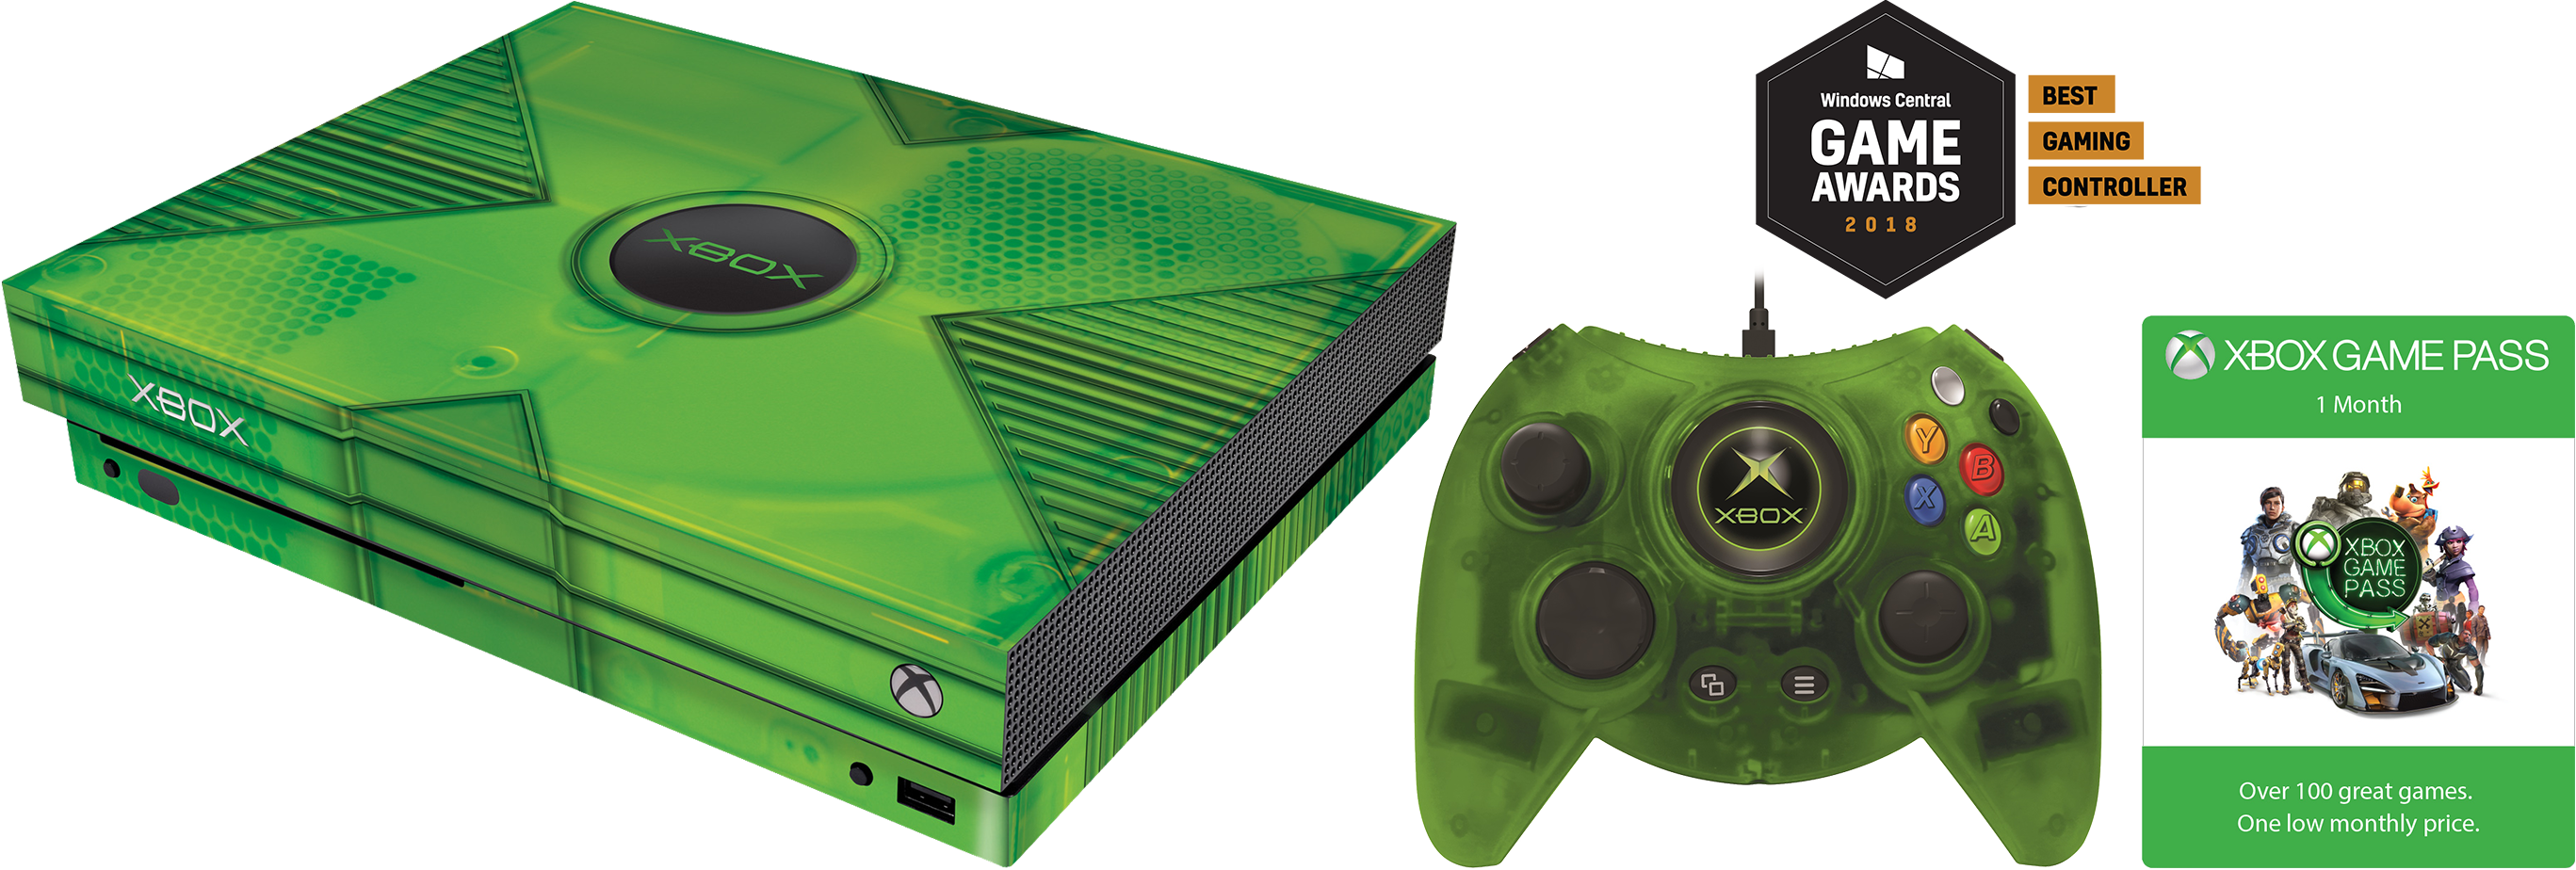 Hyperkin Xbox Classic Pack for Xbox One X including console skin, green Duke wired controller, and 1 month of Xbox Game Pass.